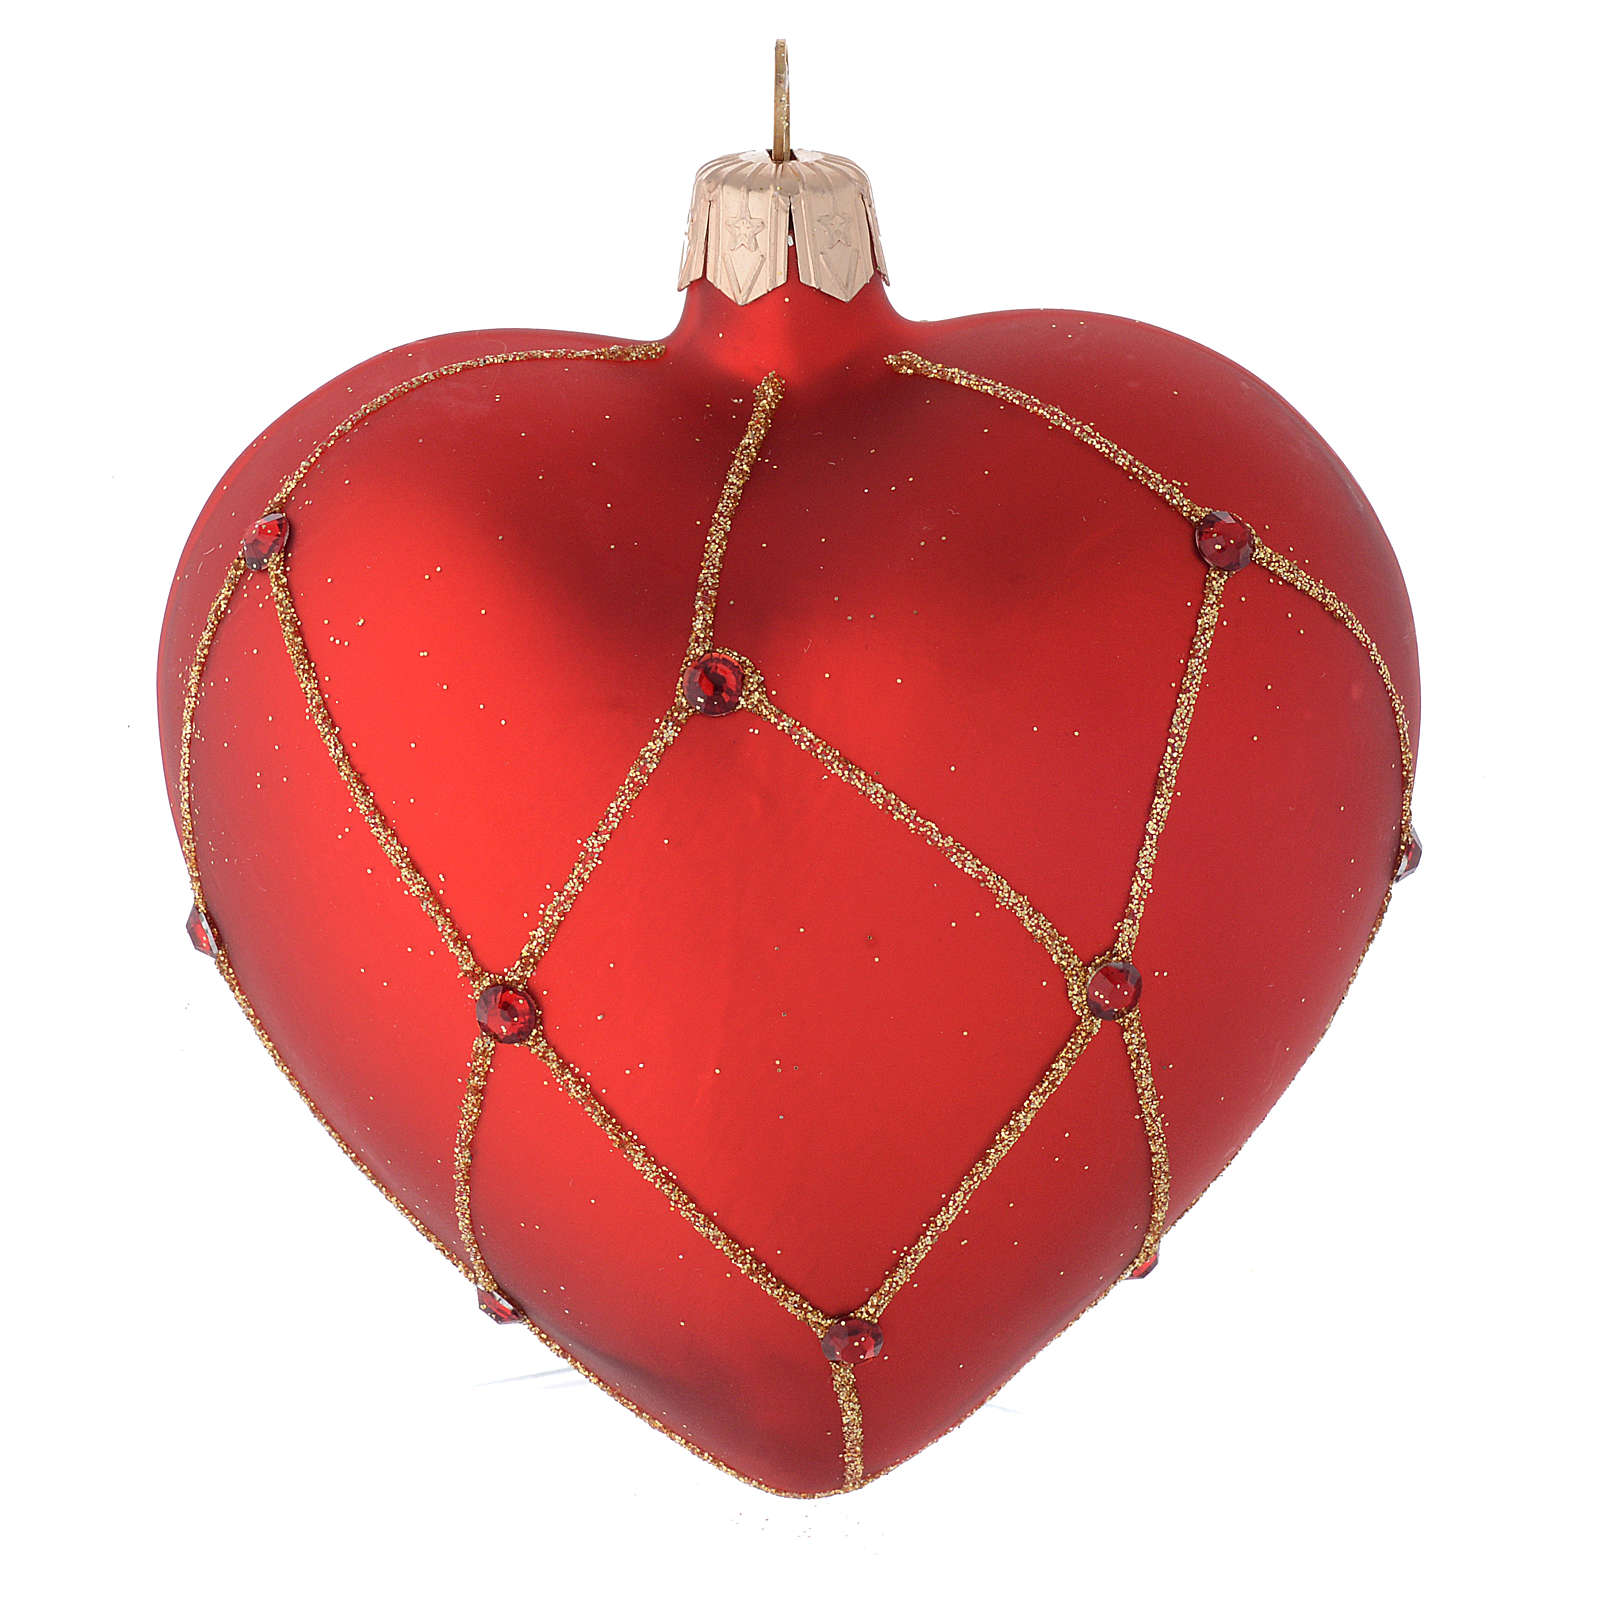 Heart Shaped Bauble in red blown glass with glitter and stones 100mm 4